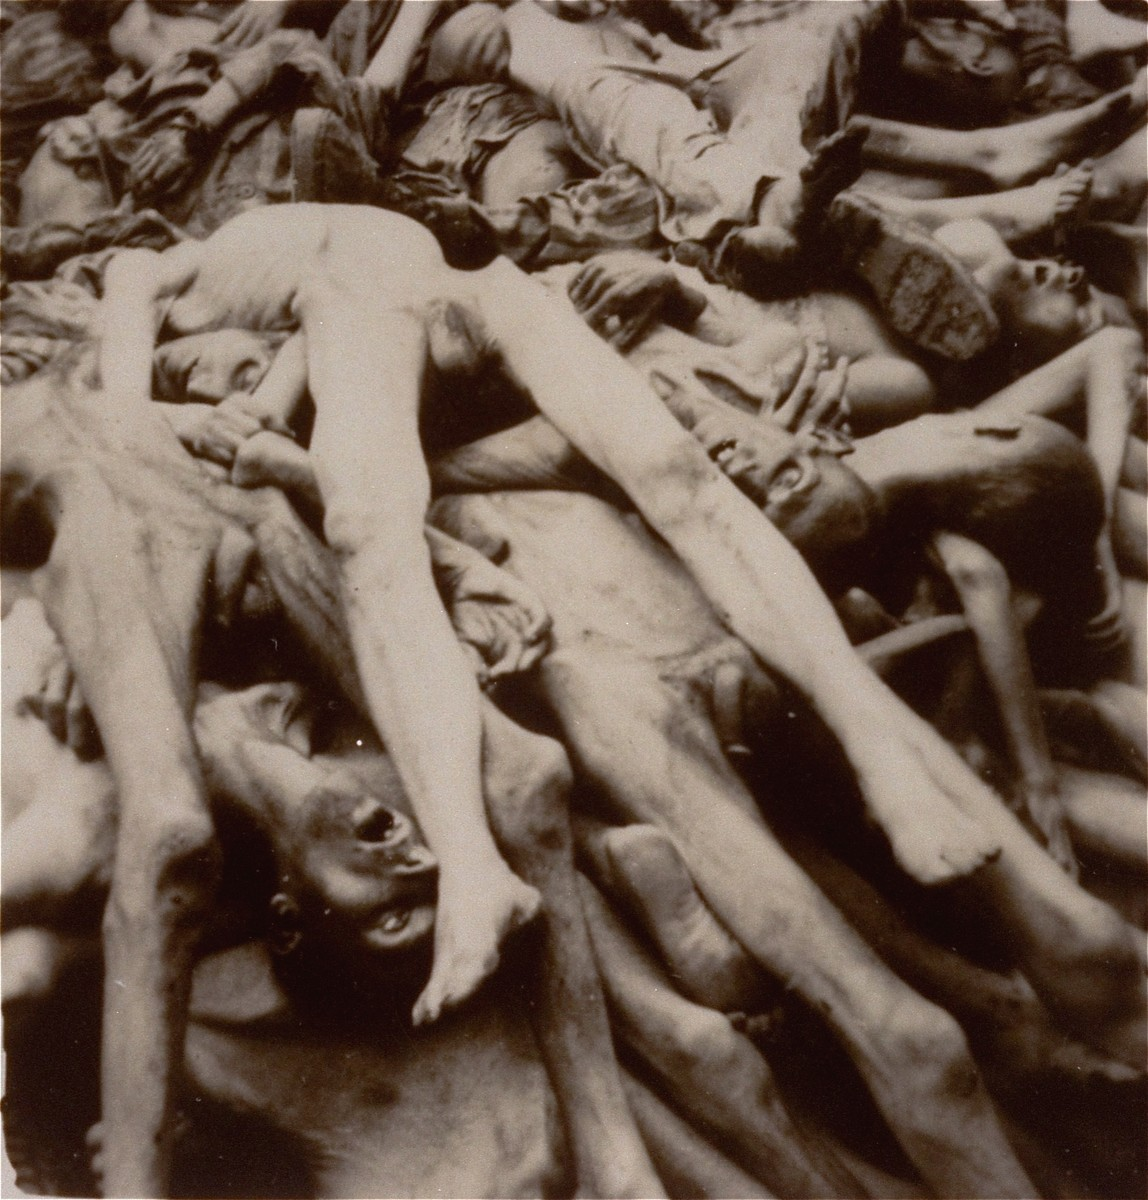 A pile of corpses in the newly liberated Dachau concentration camp.